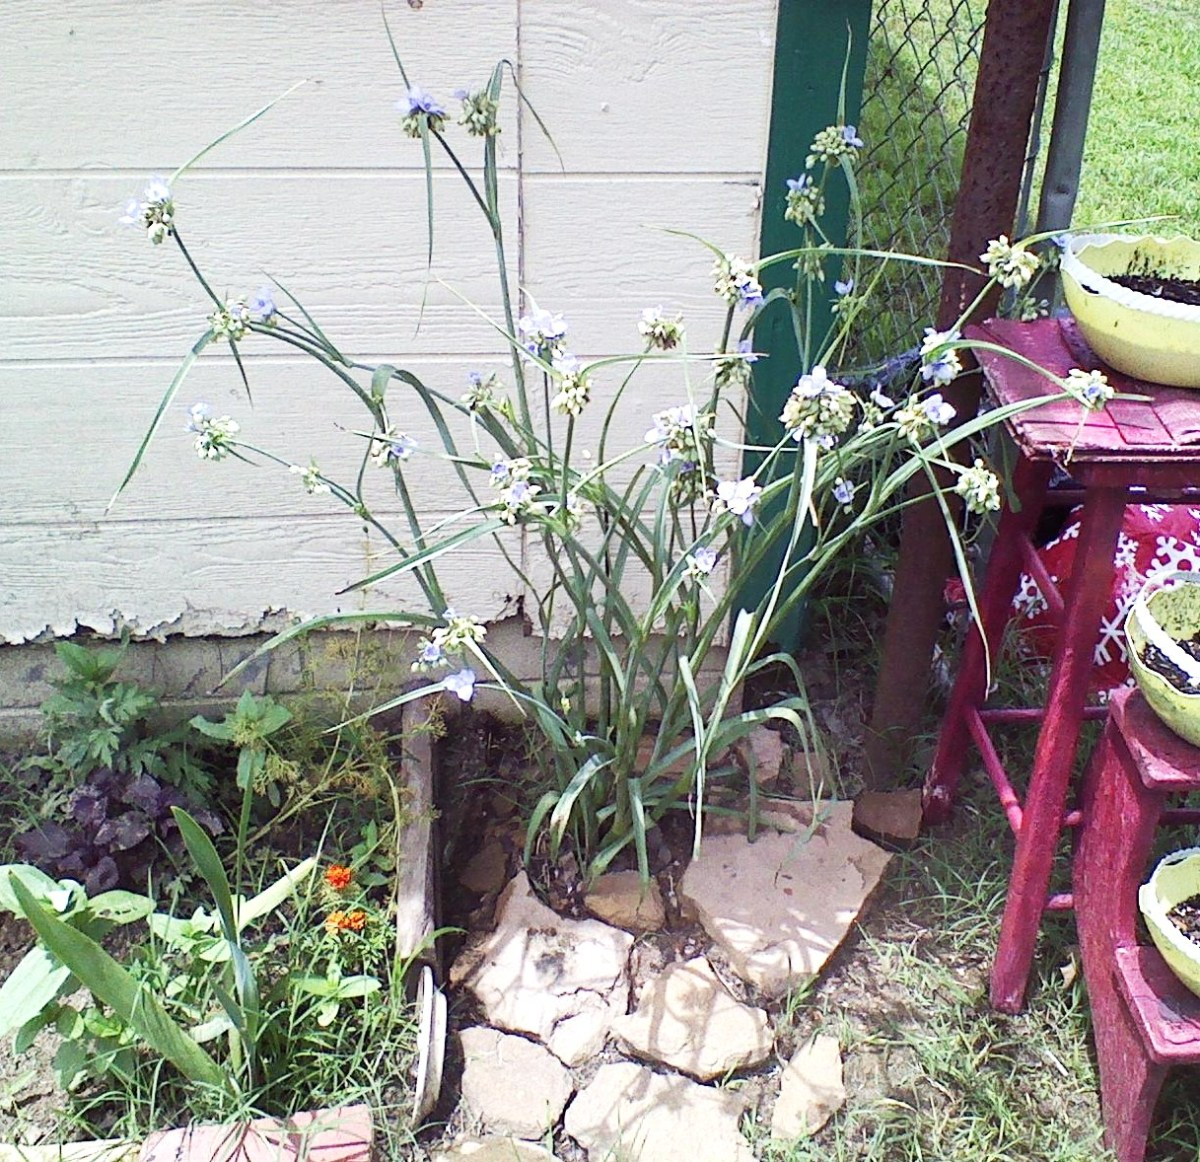 Spiderwort two days after being transplanted. Already blooming again.